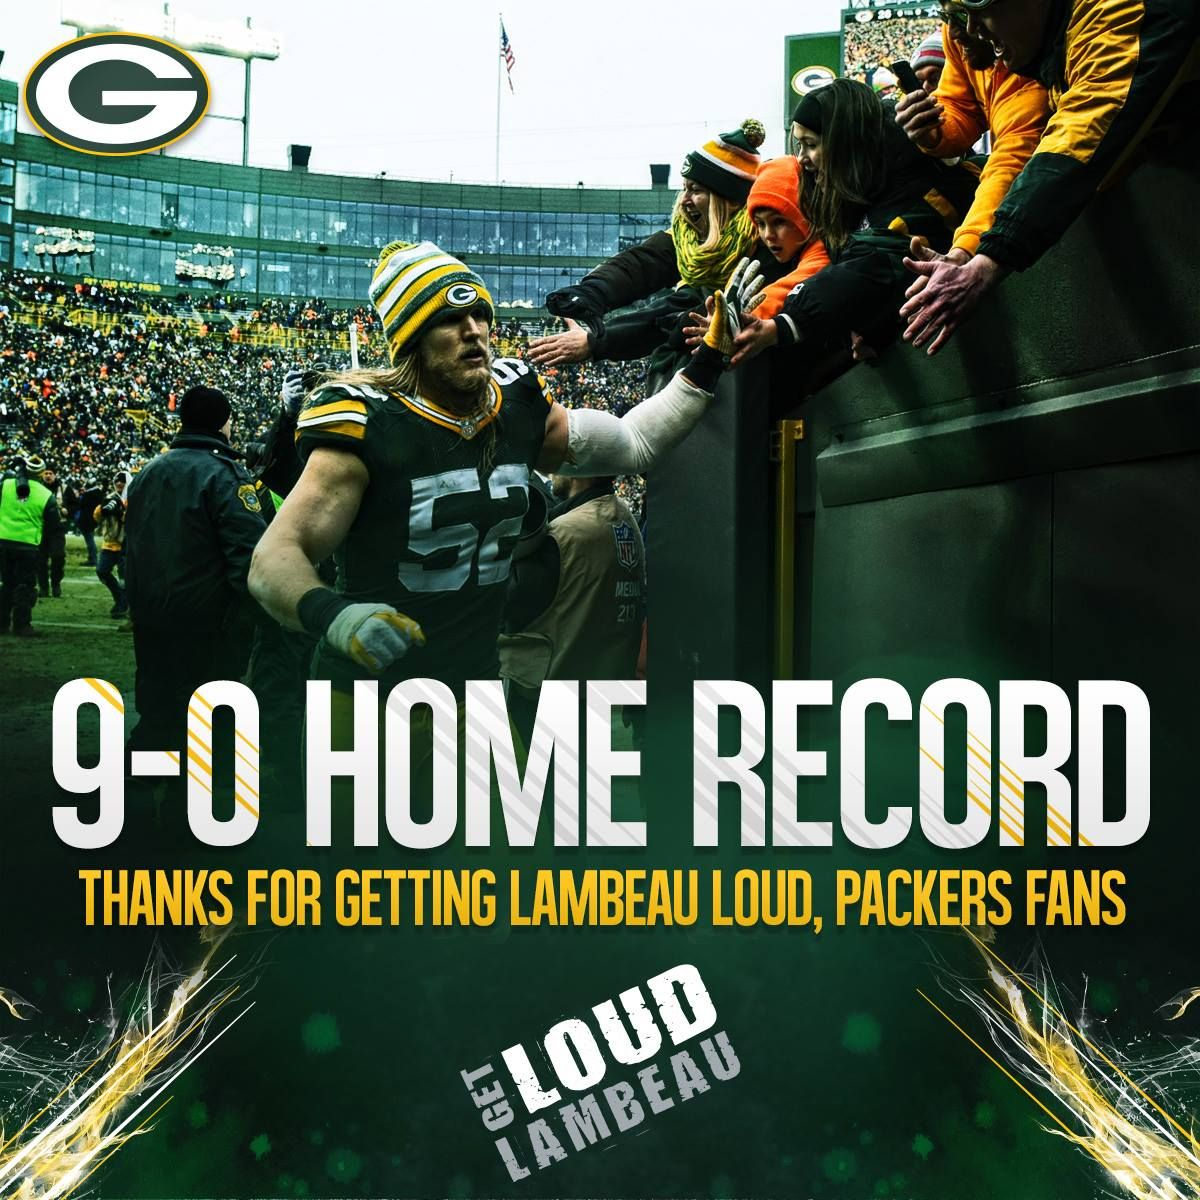 9 0 Home Record Now Let S Go Catch Some Birds Green Bay Packers Football Green Bay Packers Fans Green Bay Packers